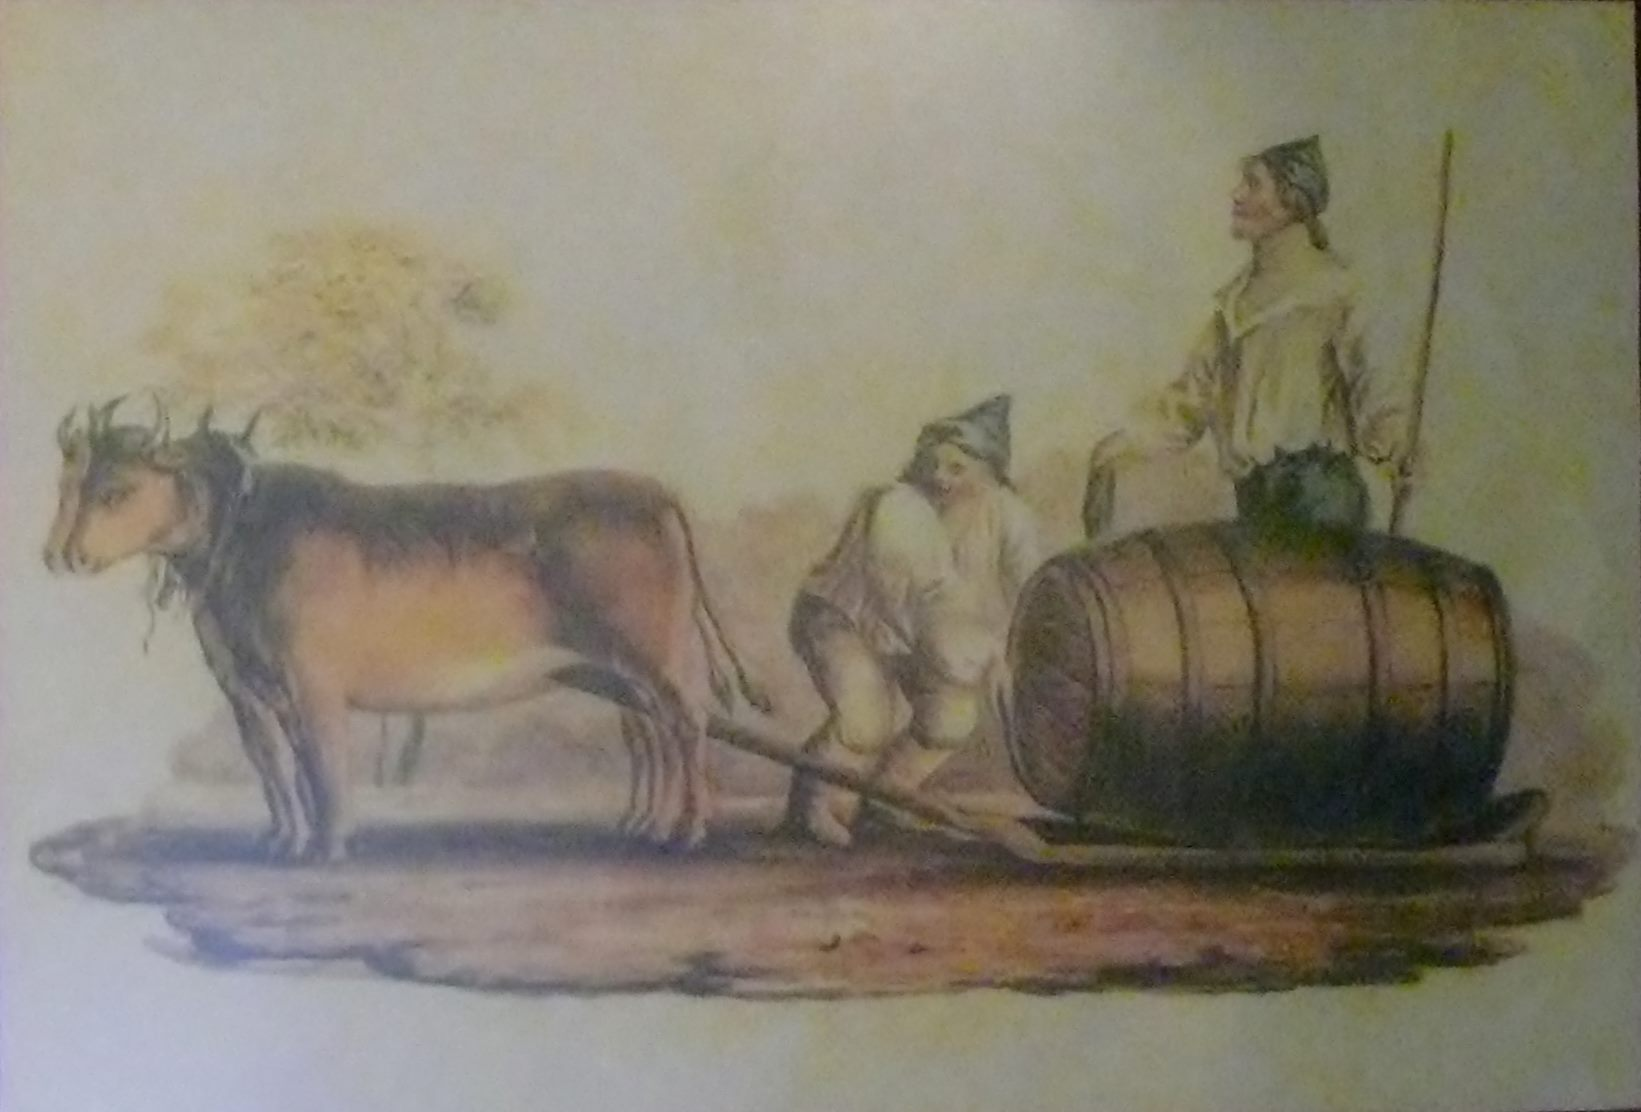 Madeira barrel on an oxen sled